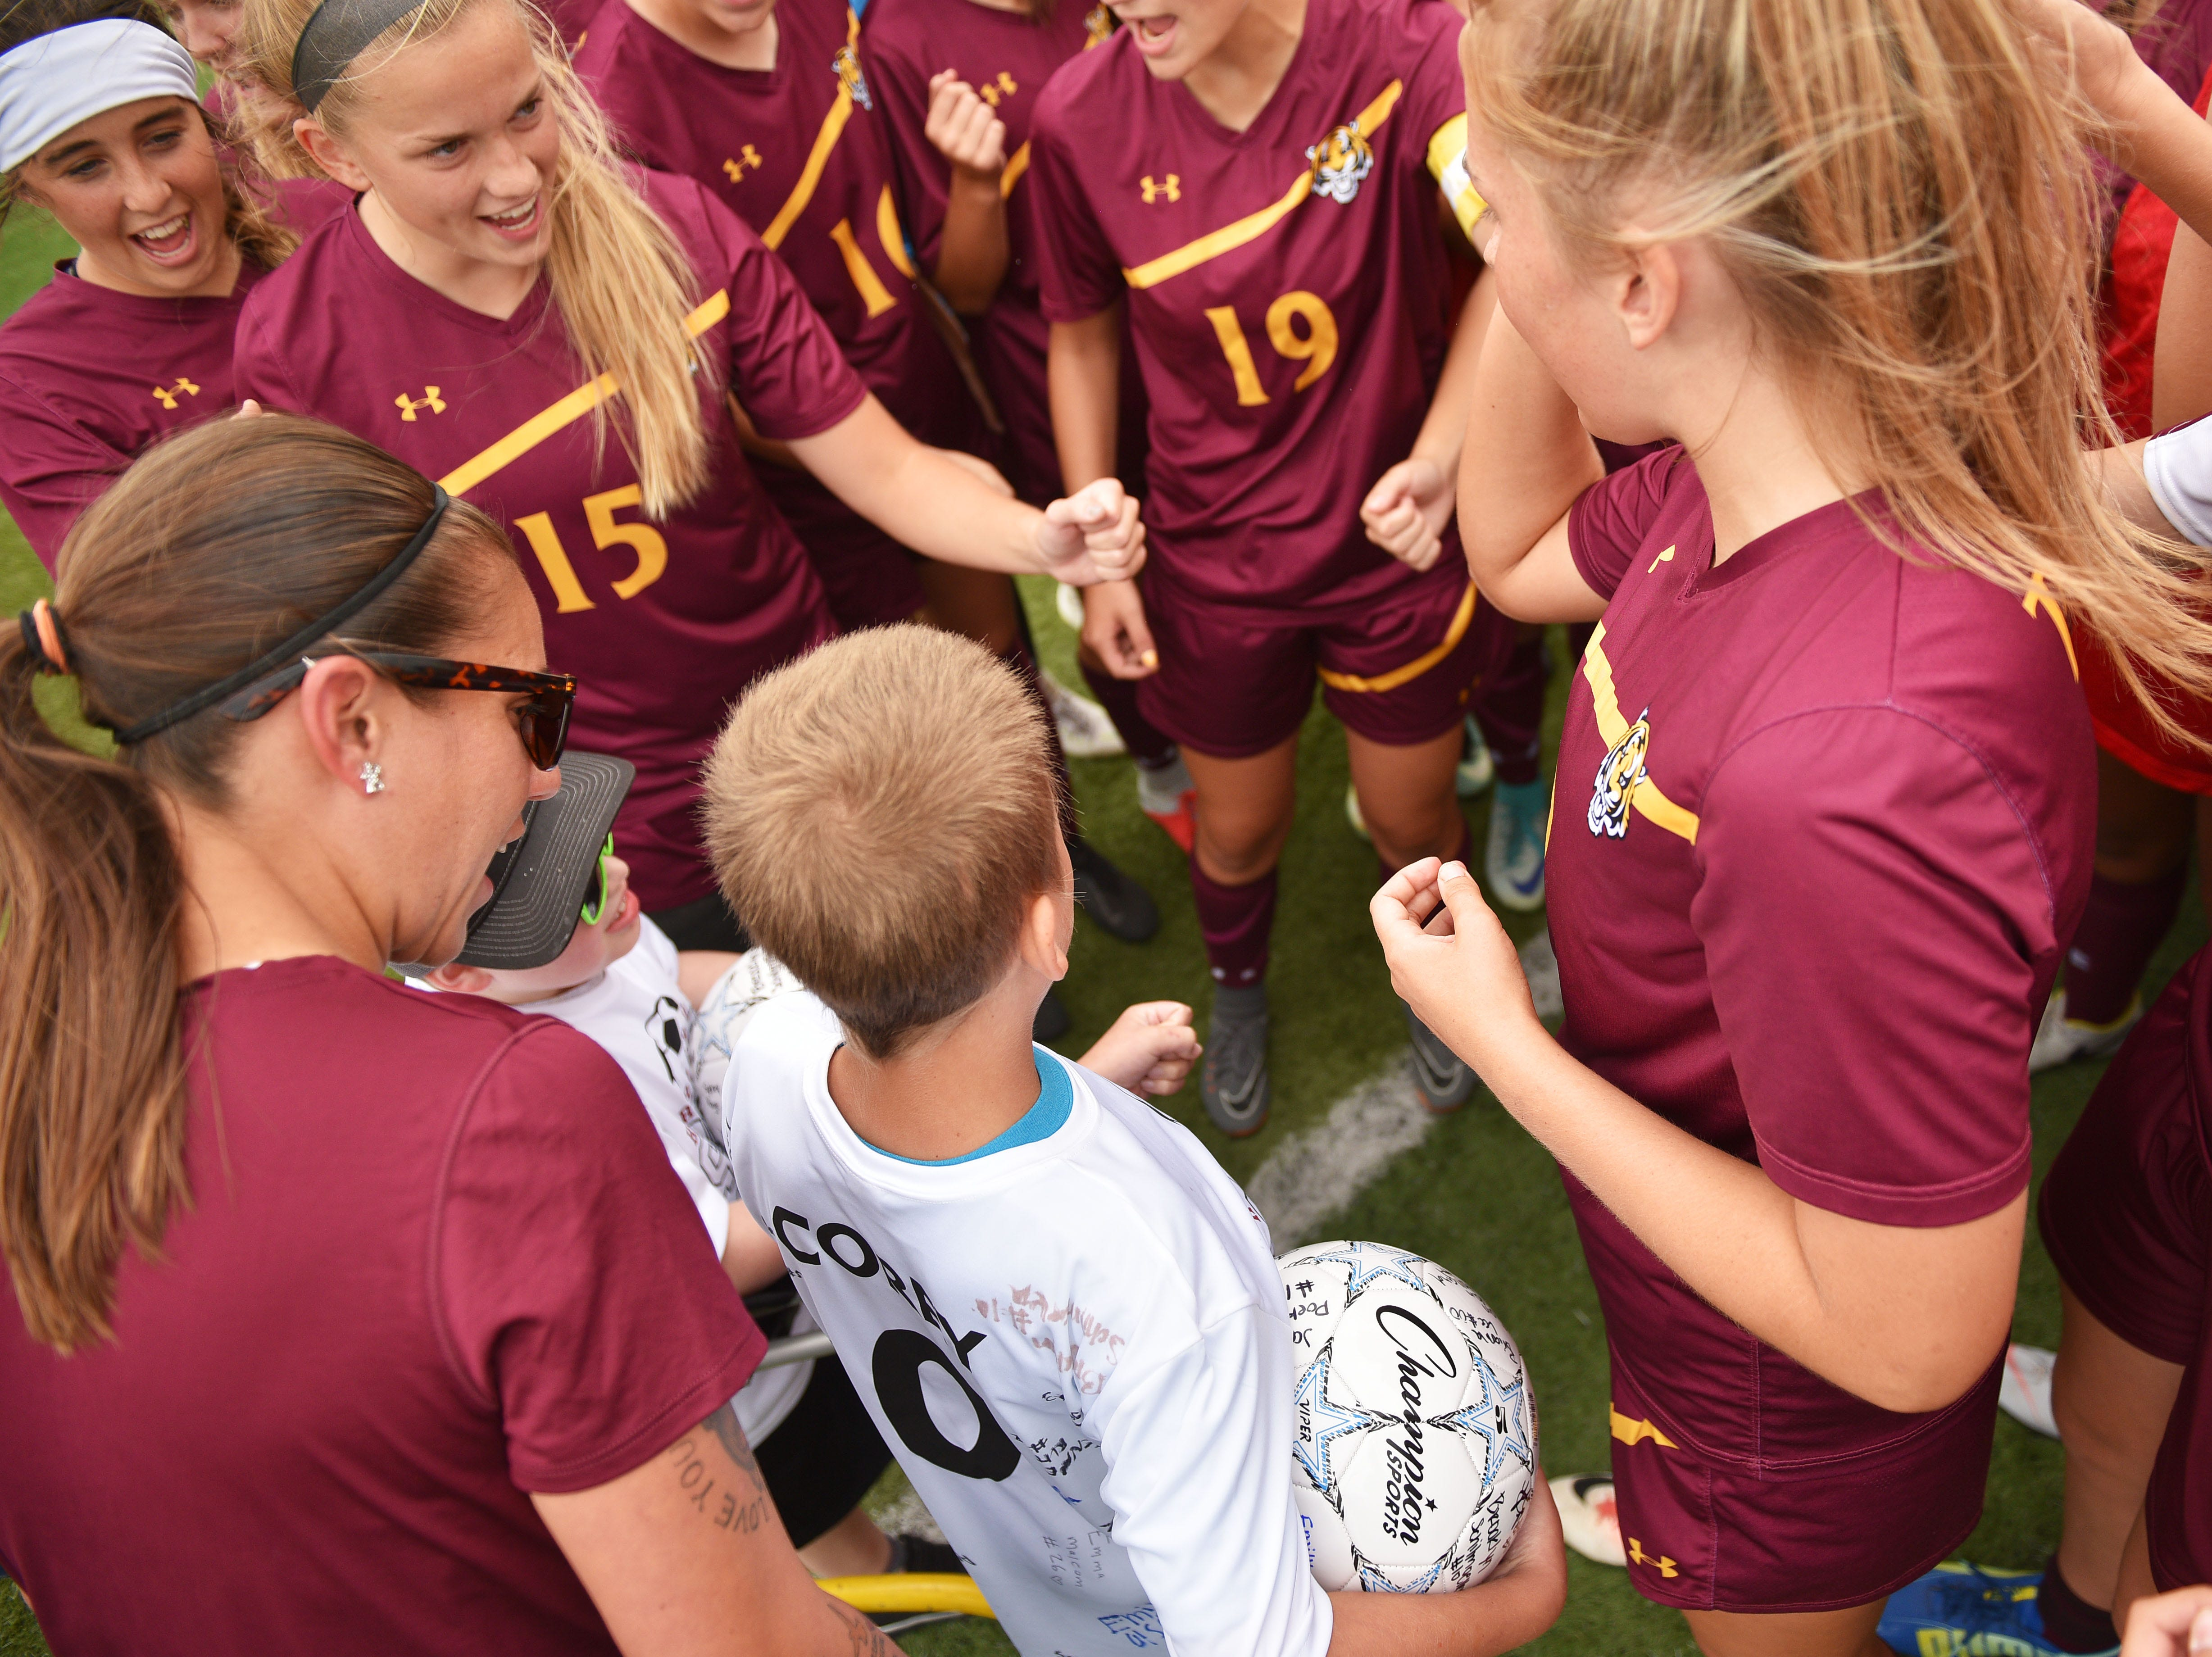 Corey Surikov and Grant Hamilton get in a huddle with the Harrisburg girls soccer team before the game against Hurron Thursday, Sept. 13, at Harrisburg. Corey Surikov and Grant Hamilton were named Players of the Game.